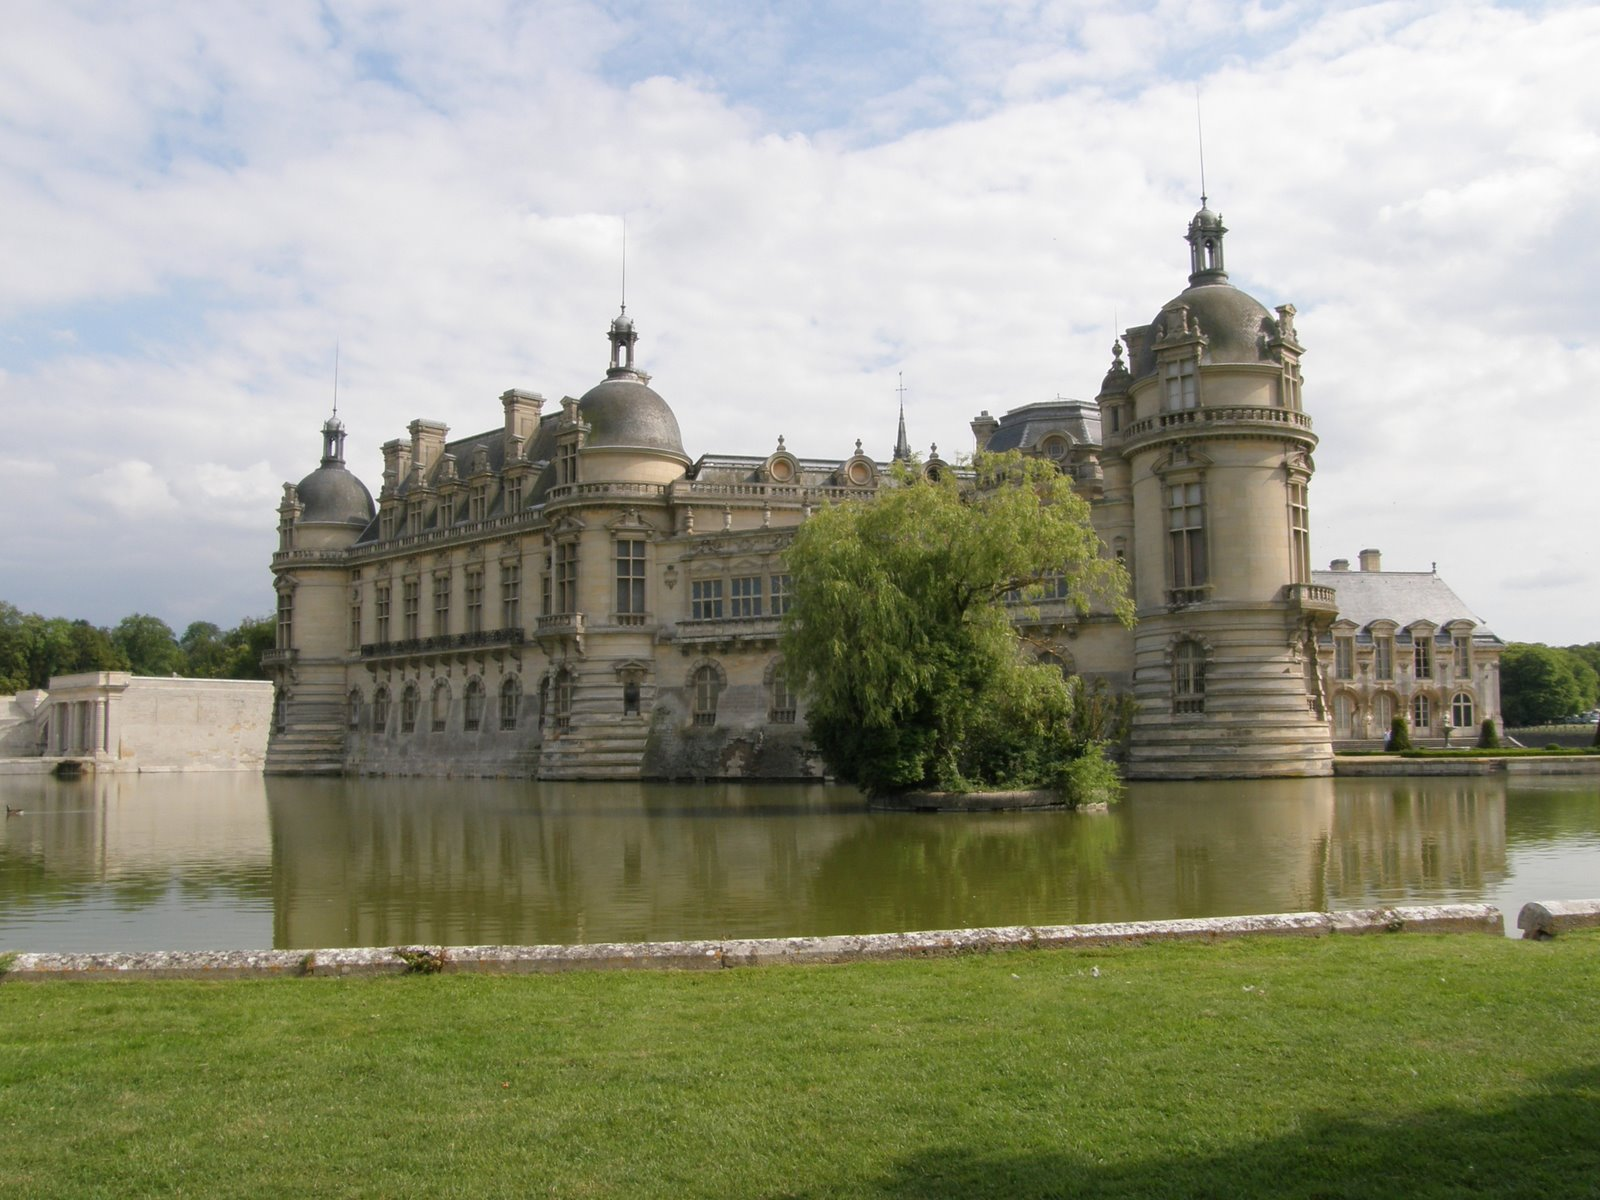 Jr 39 s retirement chateau de chantilly try again - Chateau de chantilly adresse ...